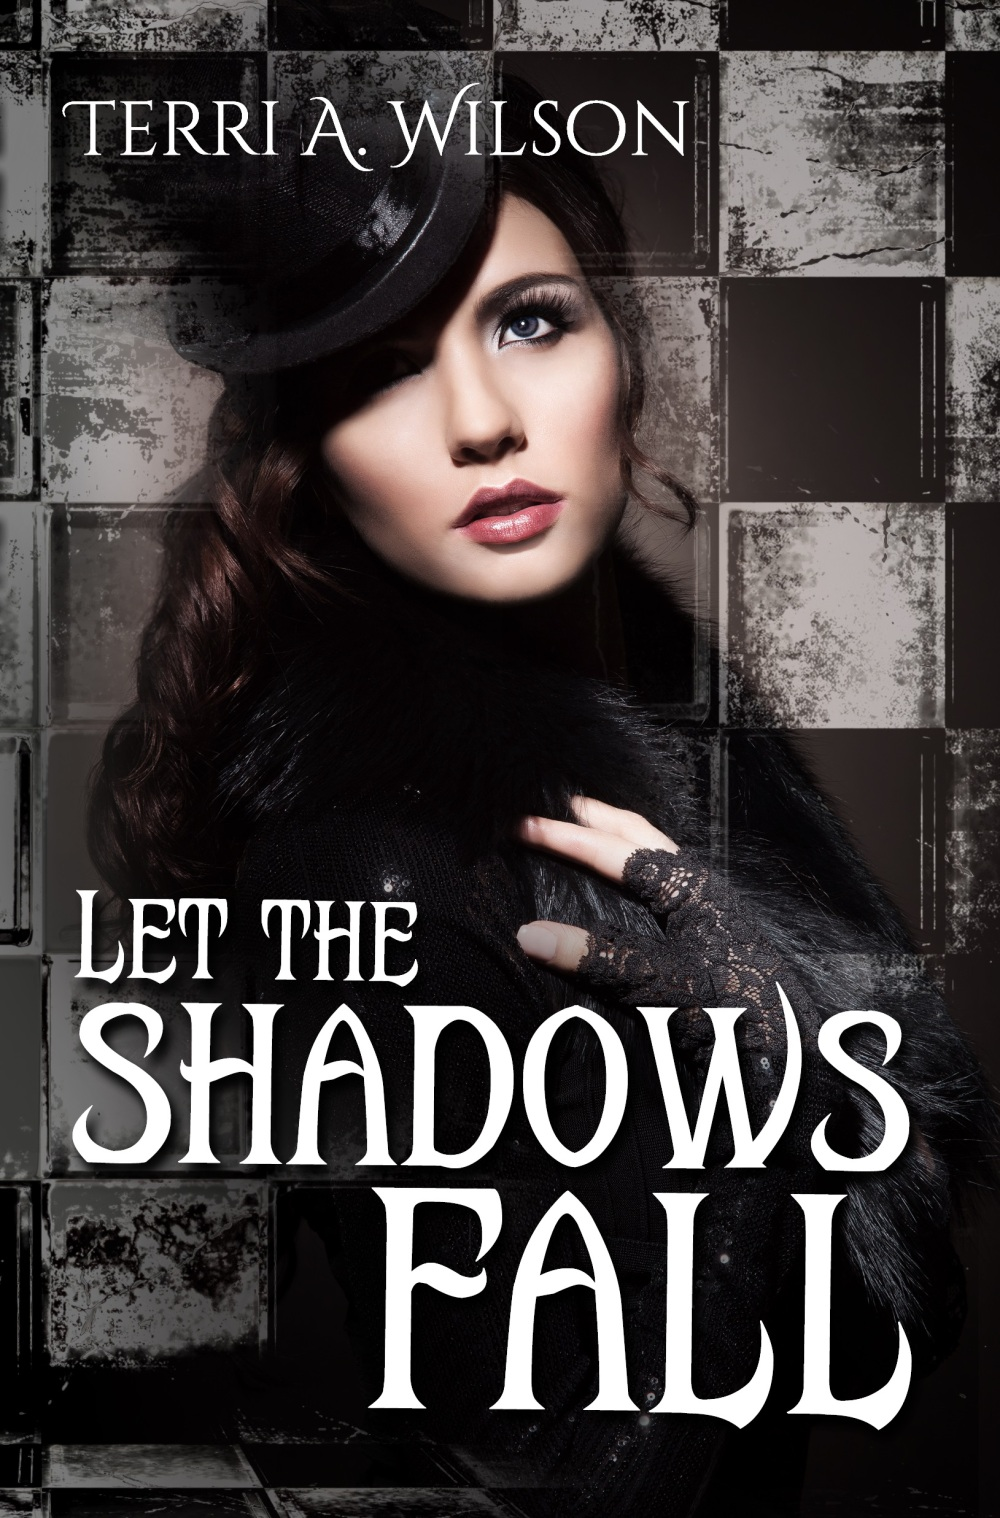 Let the Shadows Fall eBook (1)